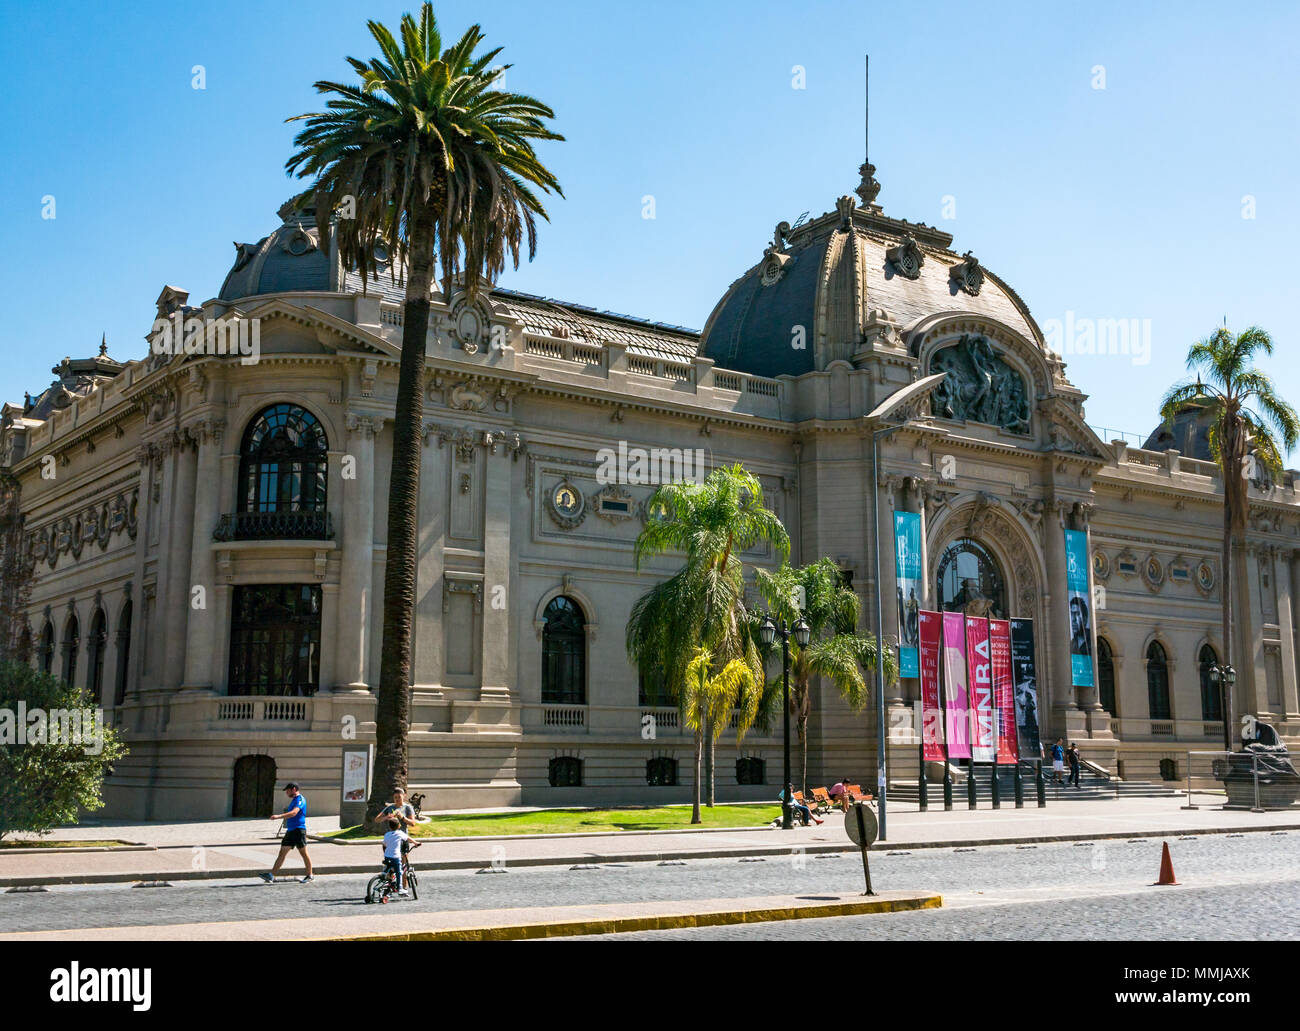 National Museum of Fine Arts, Santiago, Chile, South America, on quiet Easter Sunday with no traffic and people walking along pavement - Stock Image